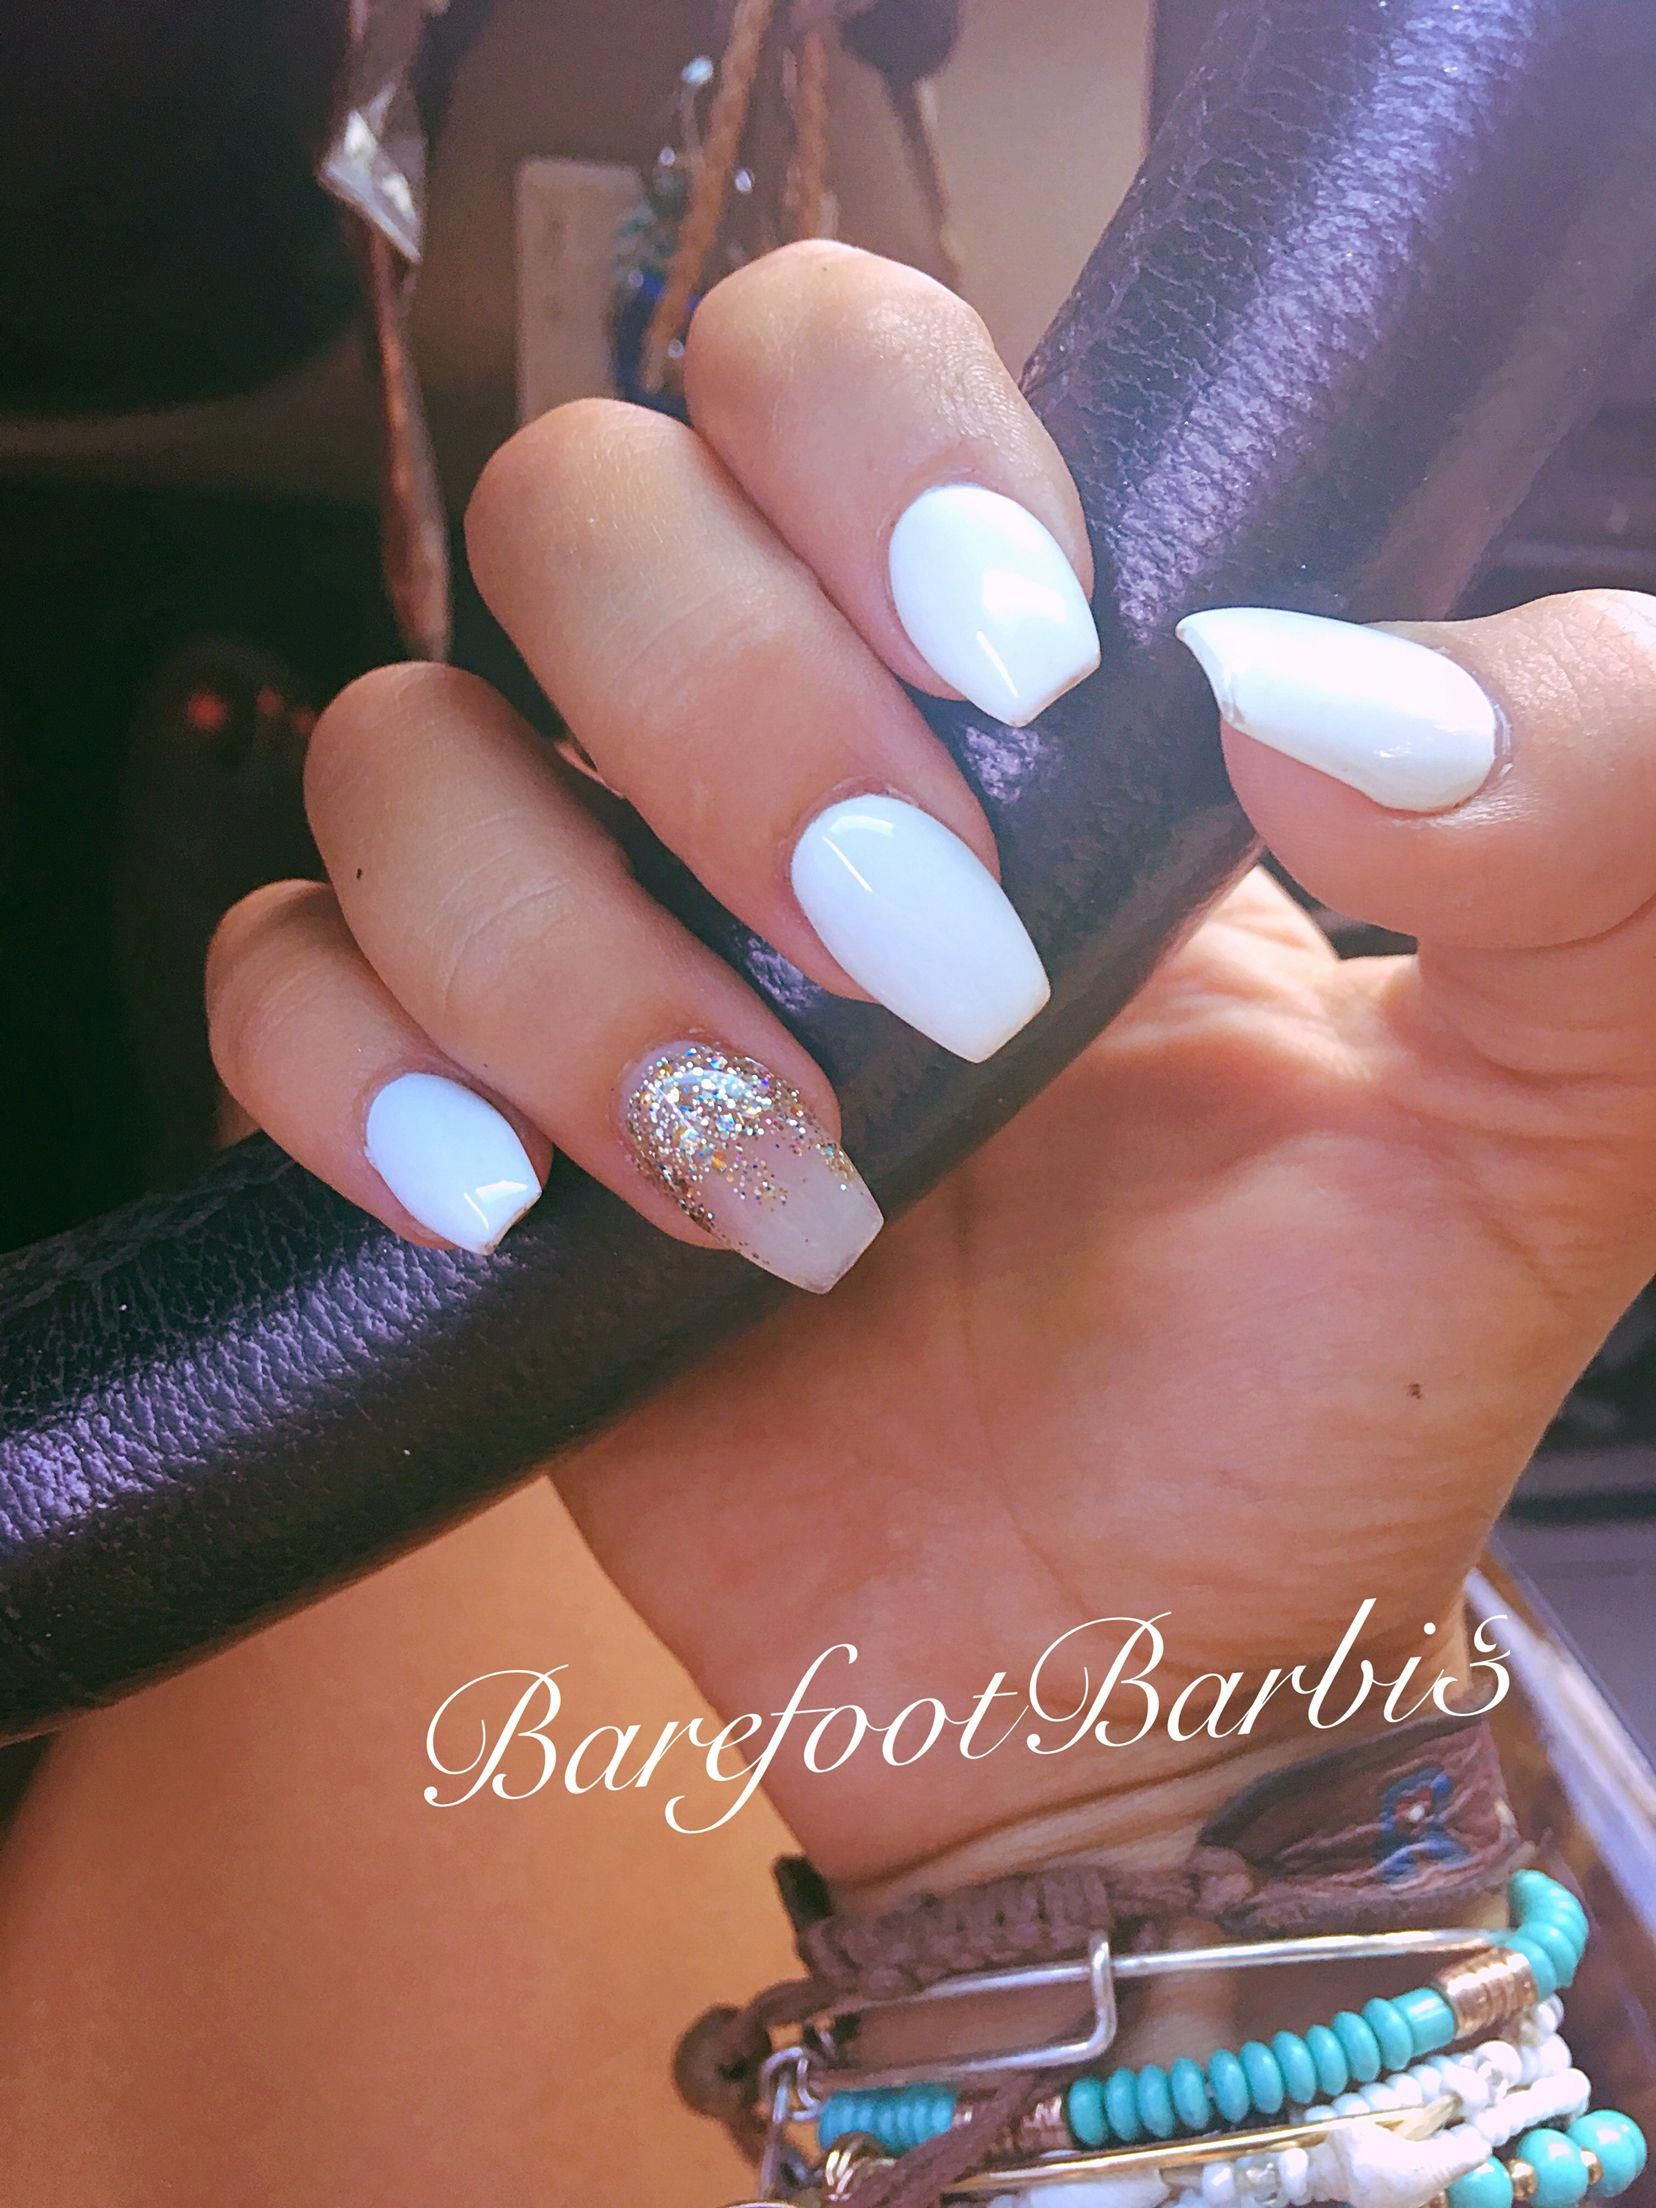 123 Nail Designs And Ideas For Coffin Acrylic Nails Page 16 Myblogika Com Acrylic Nails Coffin Short Blue Acrylic Nails Best Acrylic Nails